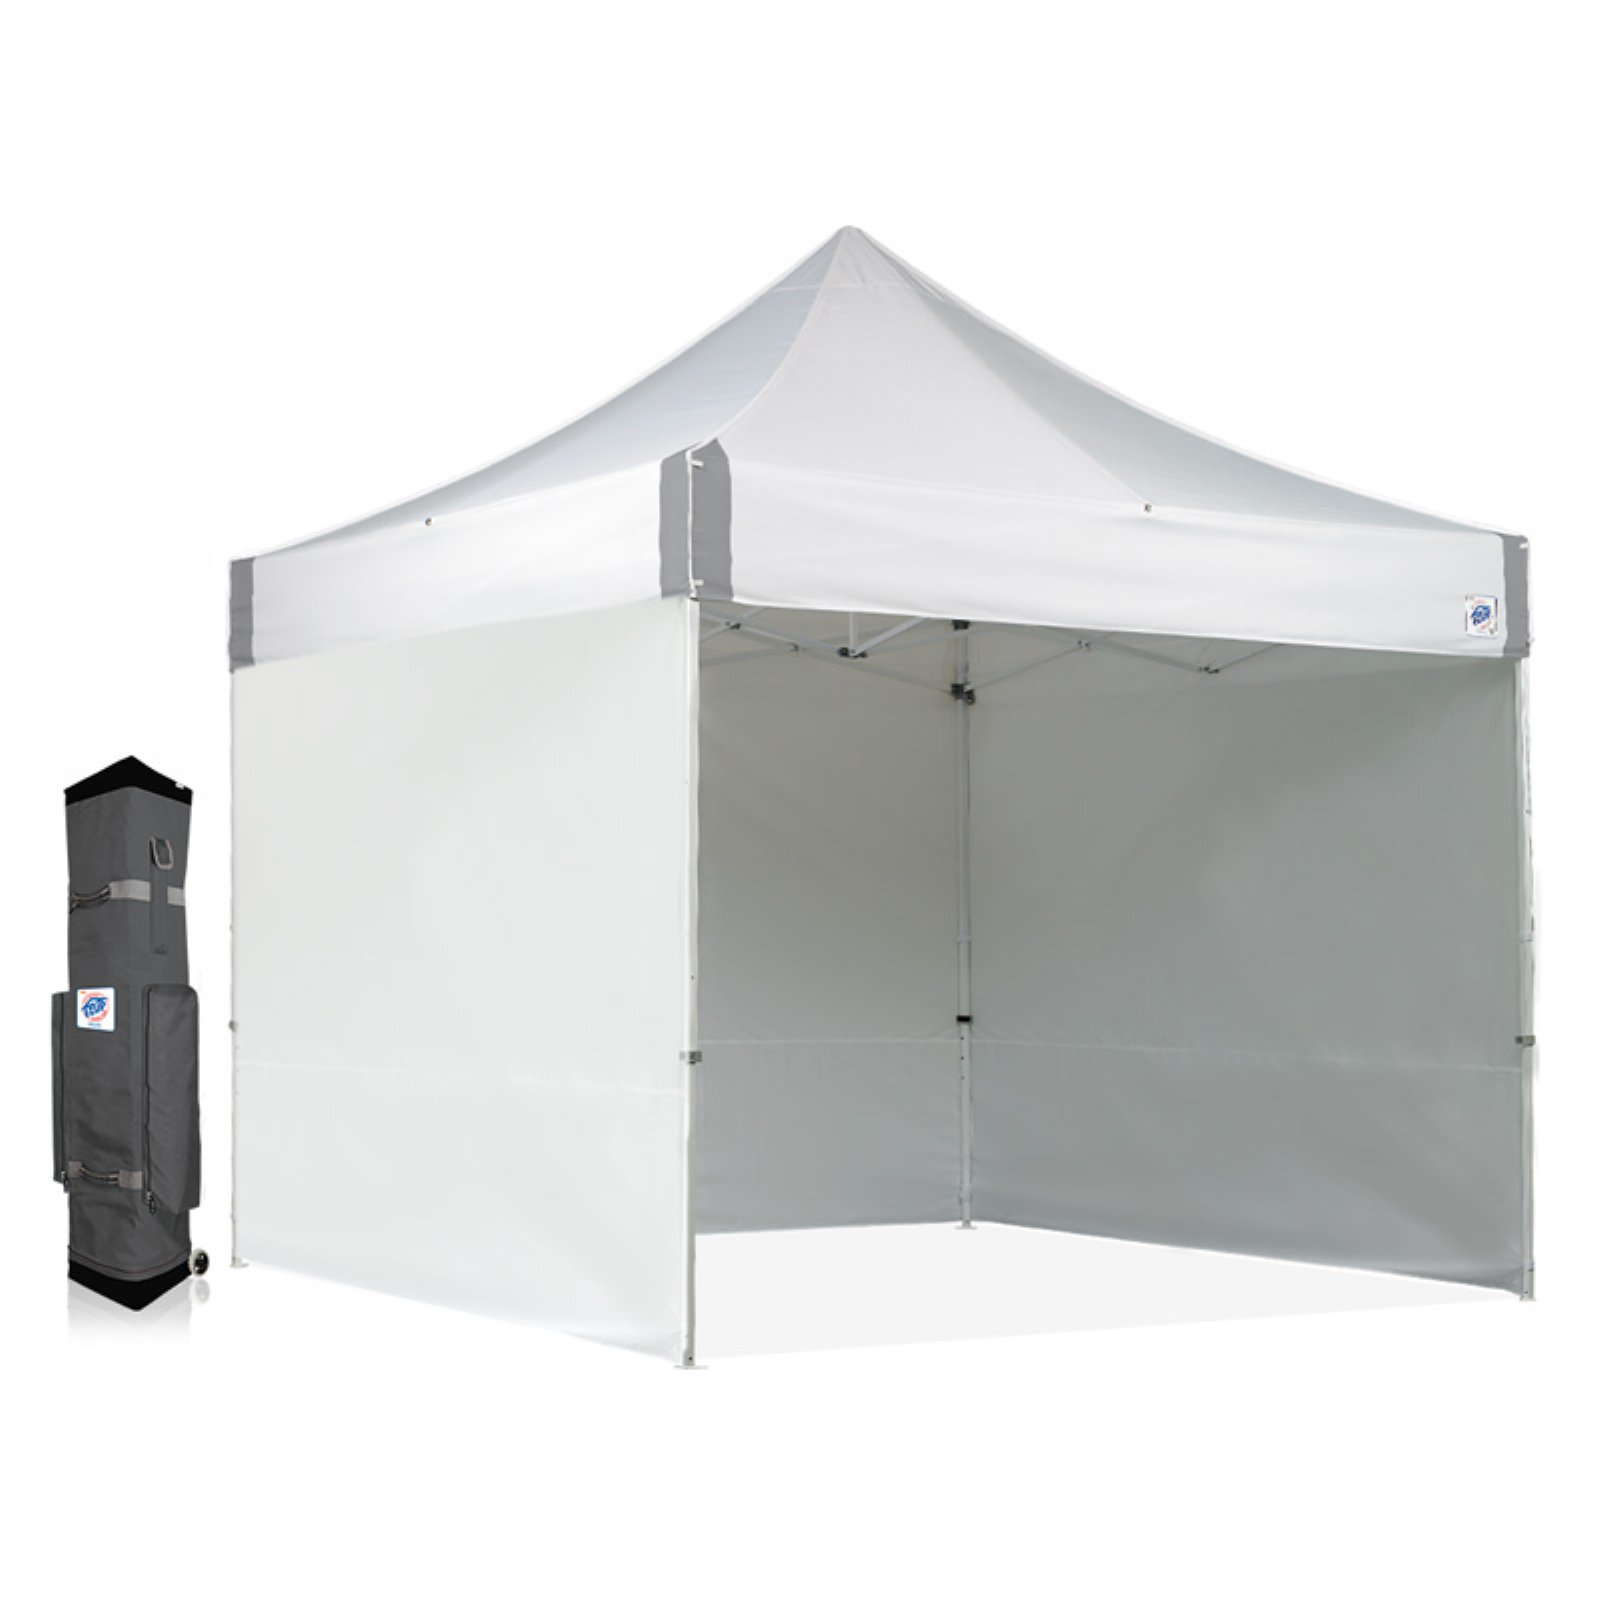 E-Z UP ES100S Instant Shelter Value Pack, 10 x 10', White by International EZ UP Inc